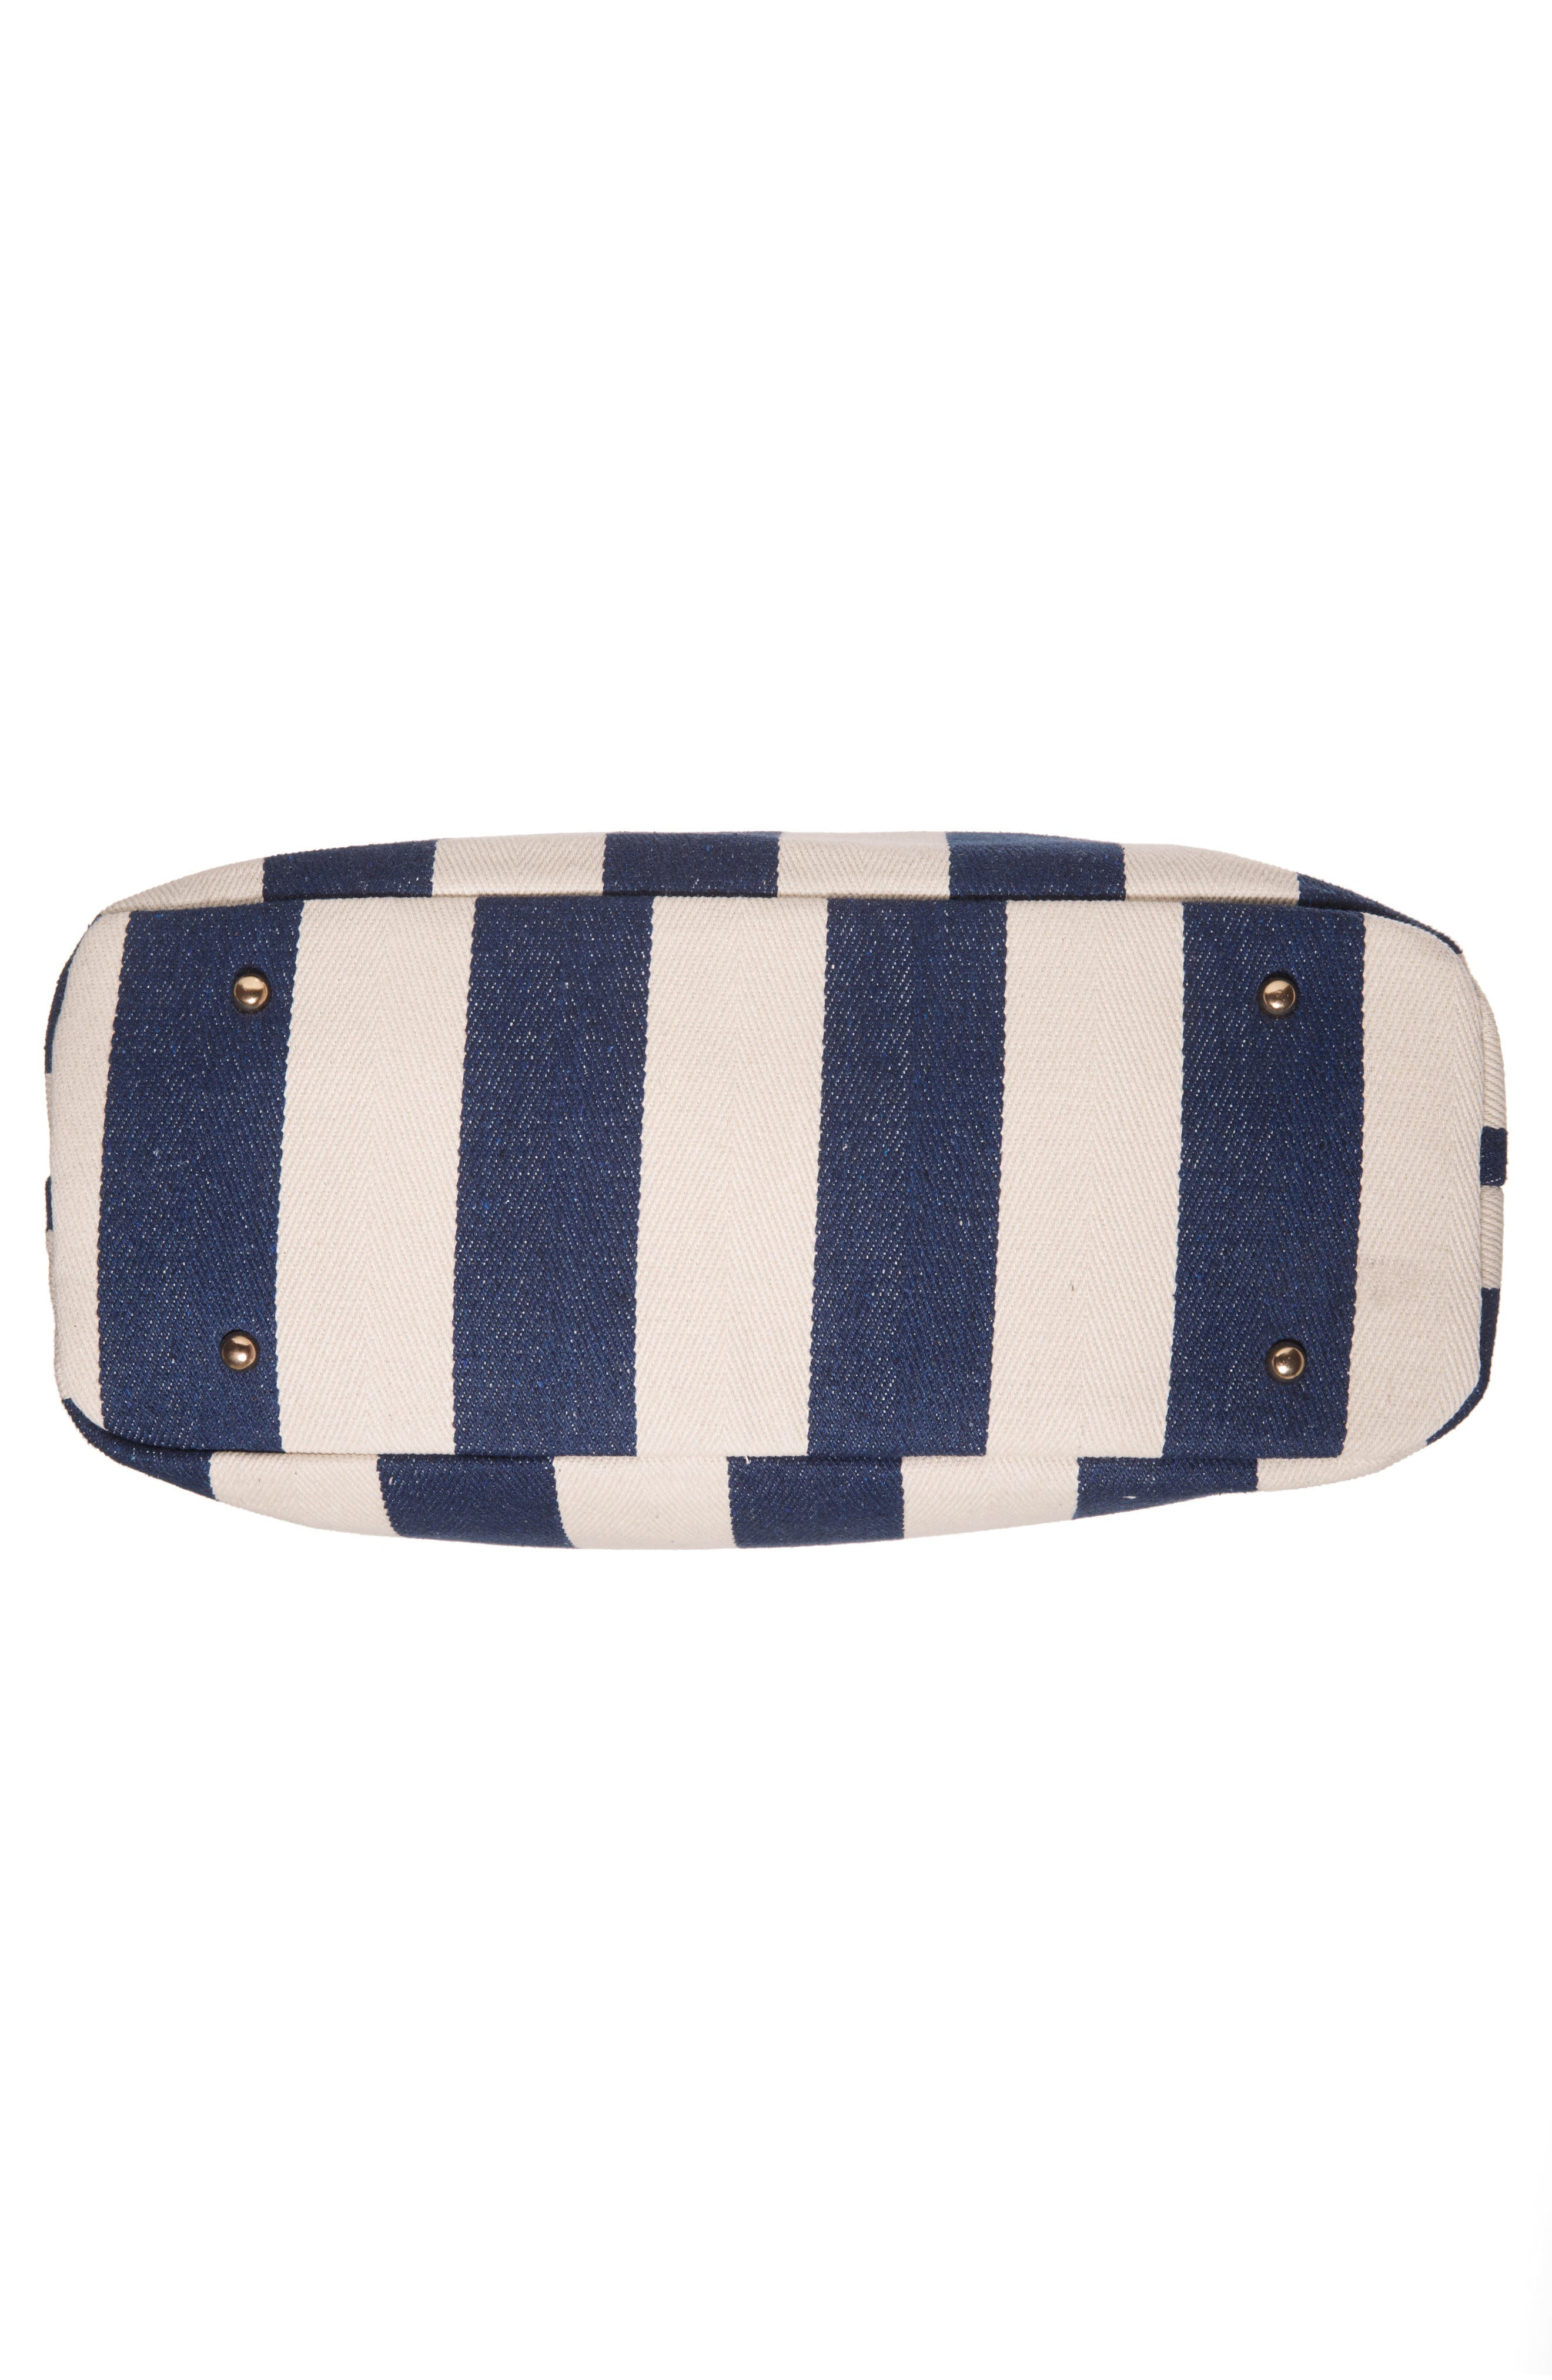 SOLE SOCIETY,                             'Oversize Millie' Stripe Print Tote,                             Alternate thumbnail 6, color,                             NAVY CREAM